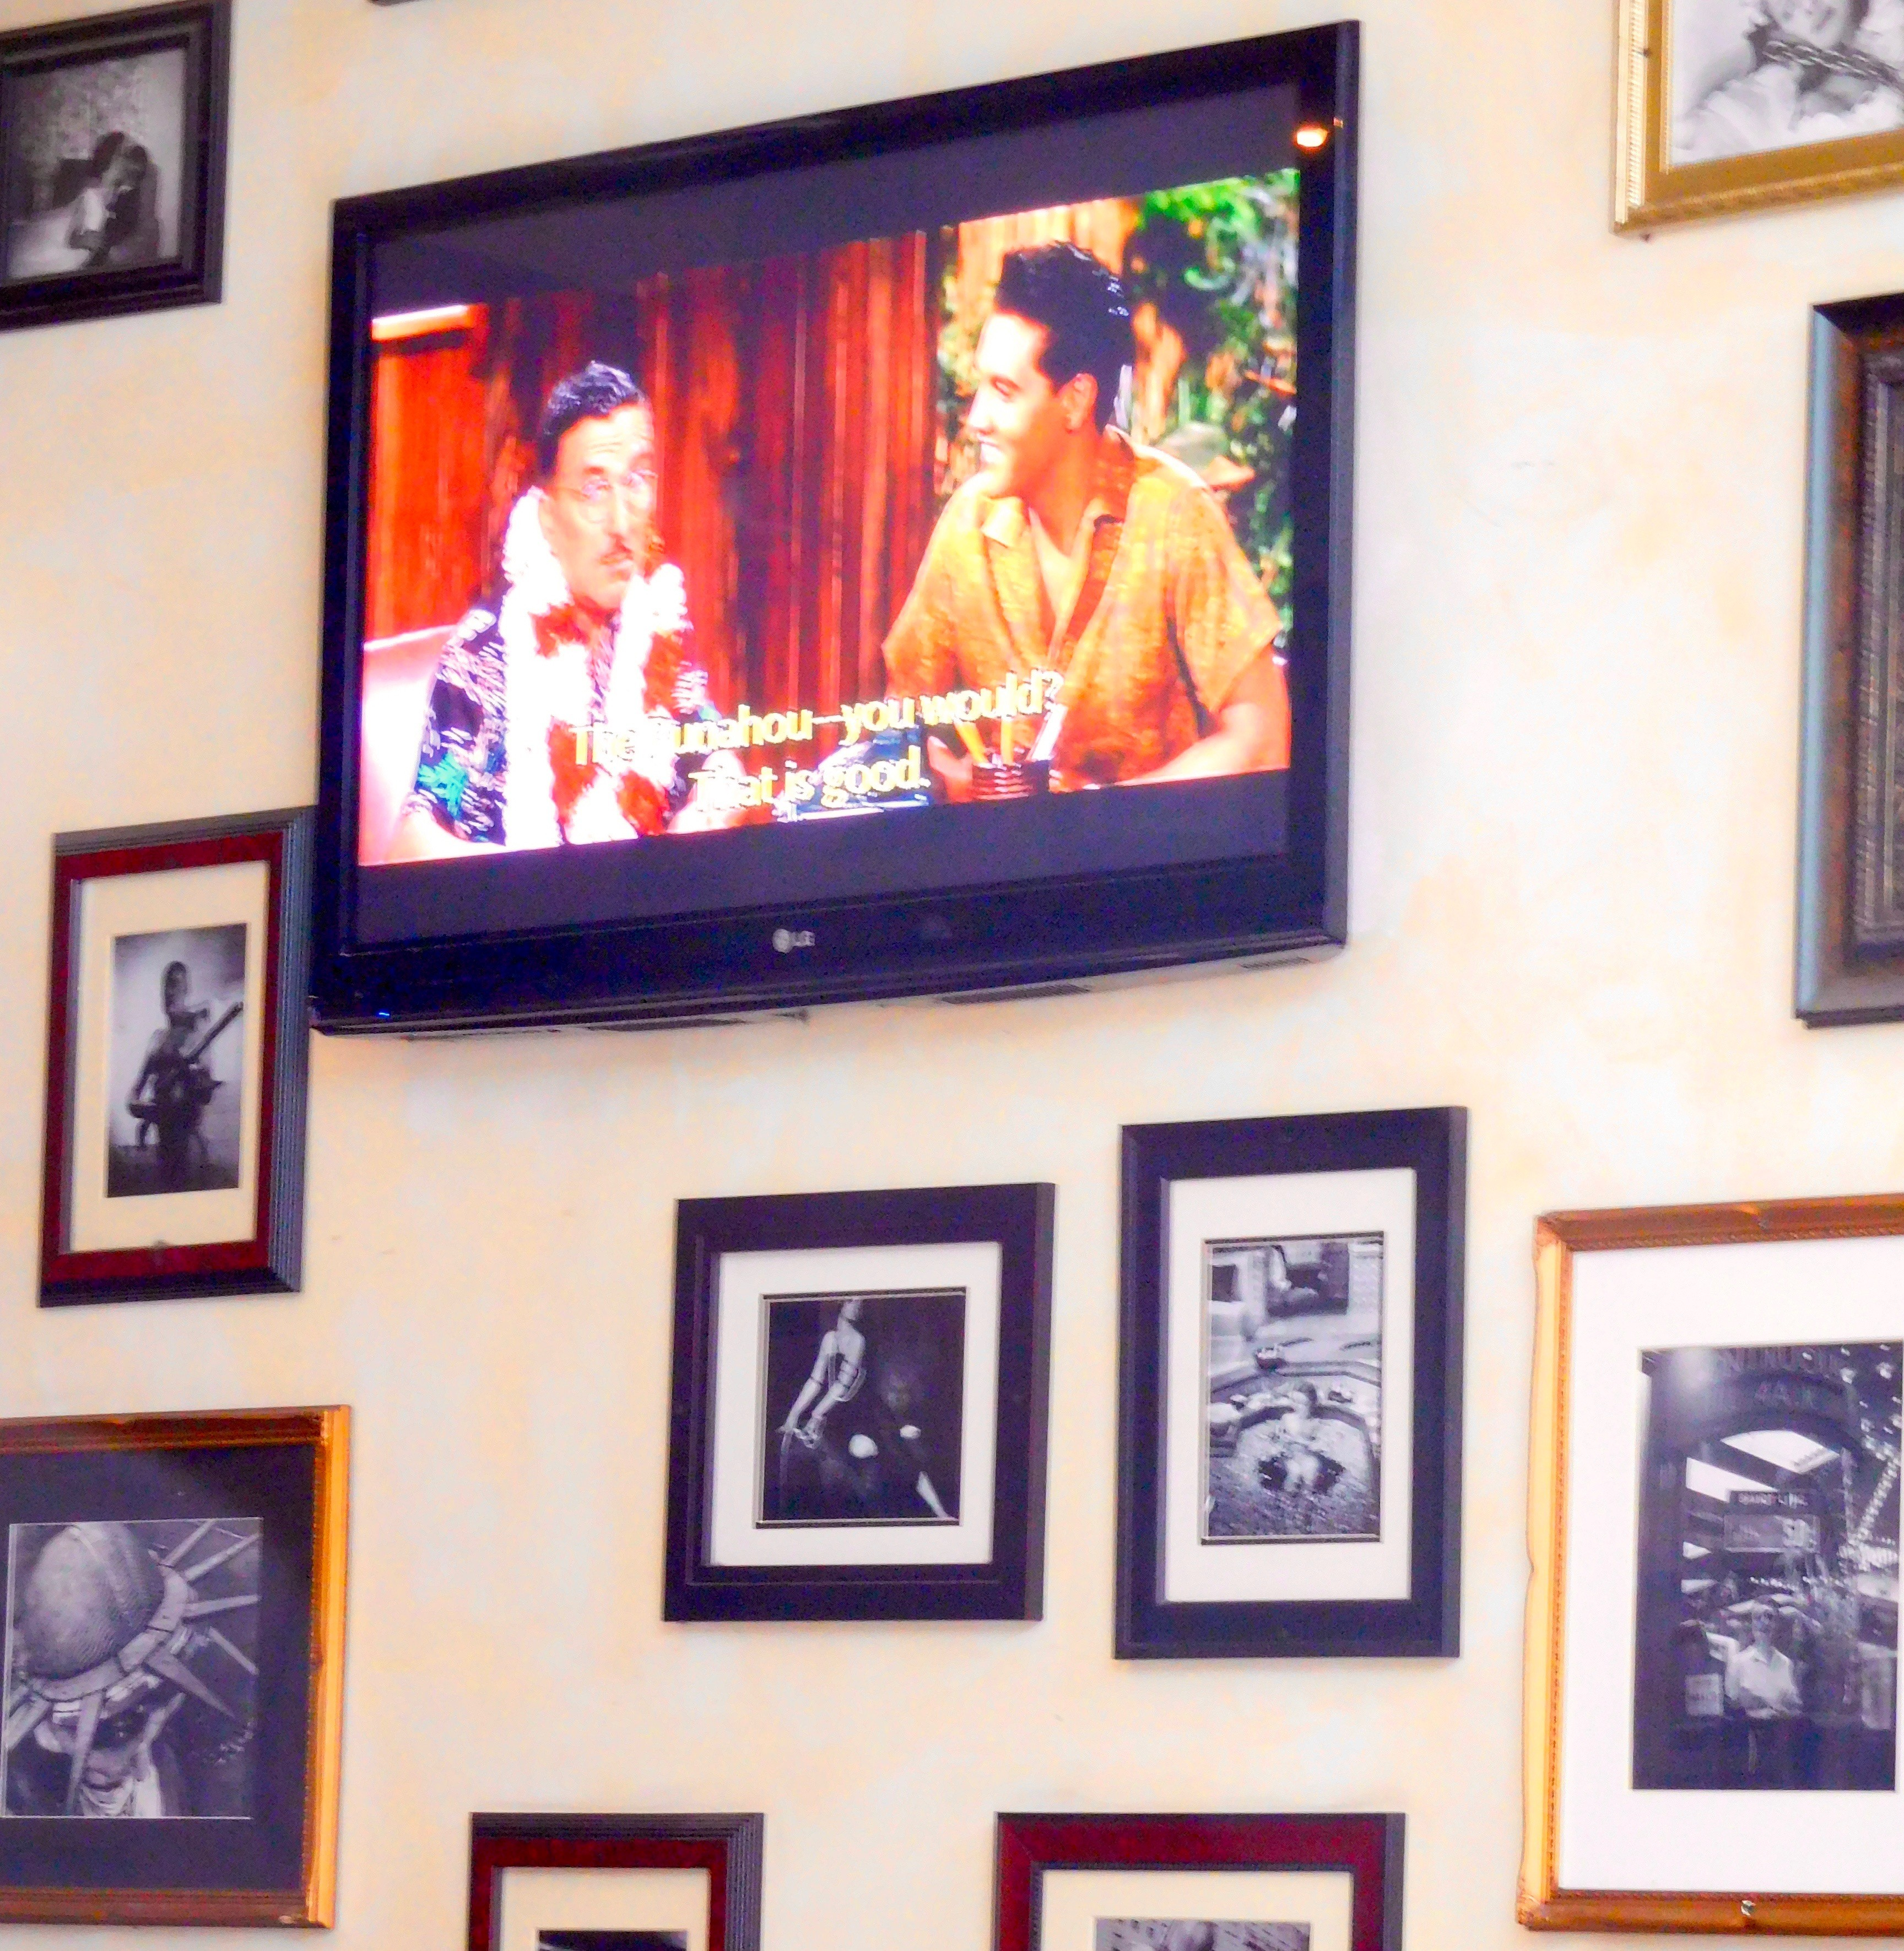 A TV is mounted on a wall amidst several framed photos